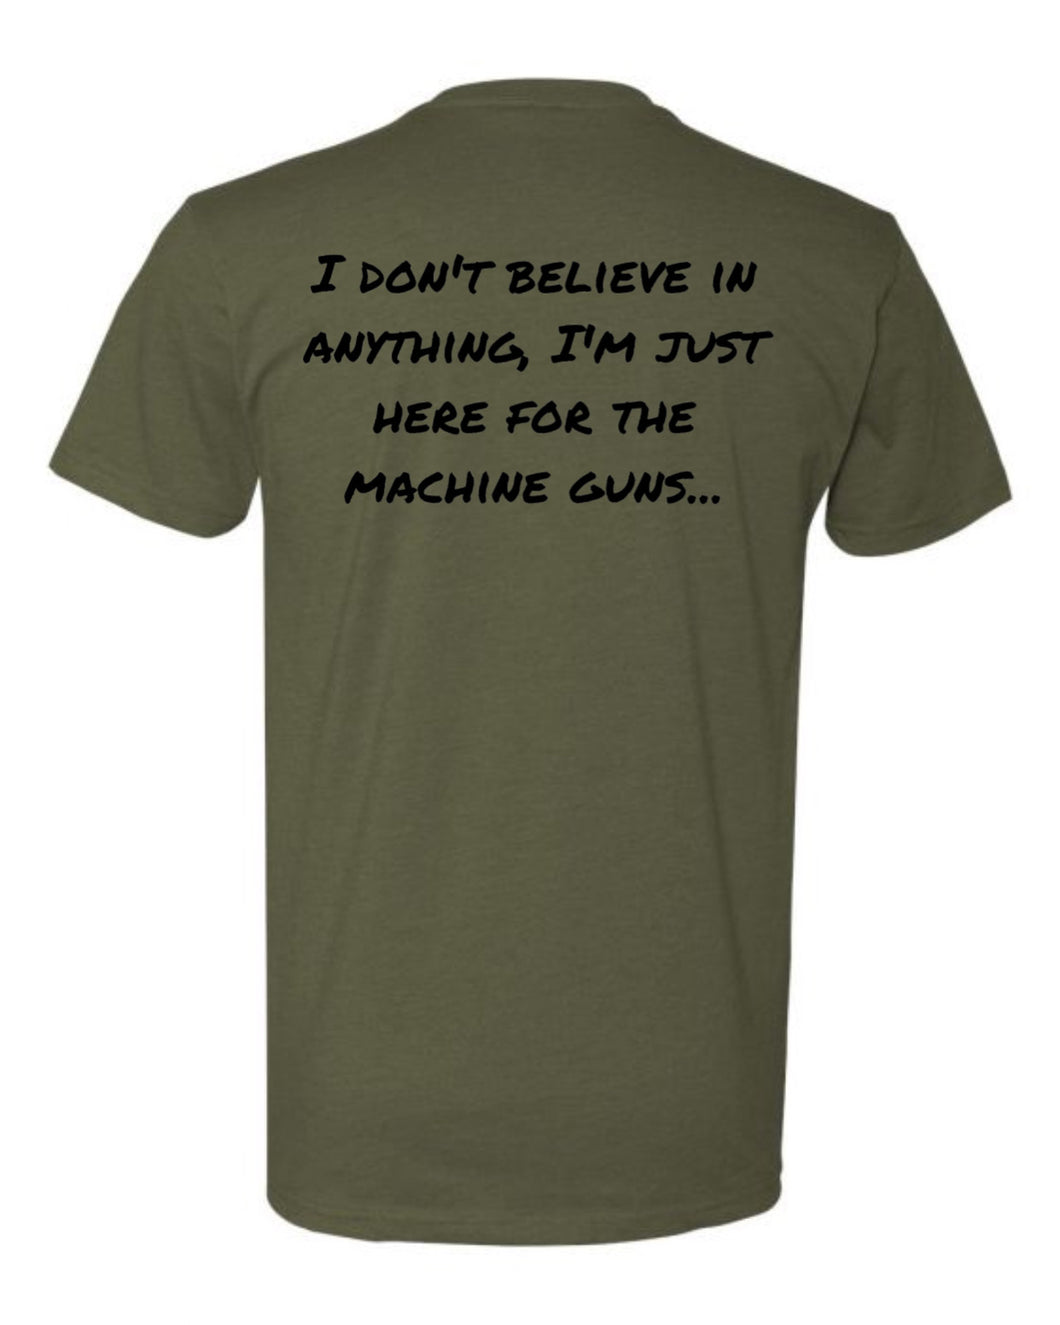 I'm Just Here For The Machine Guns Tee